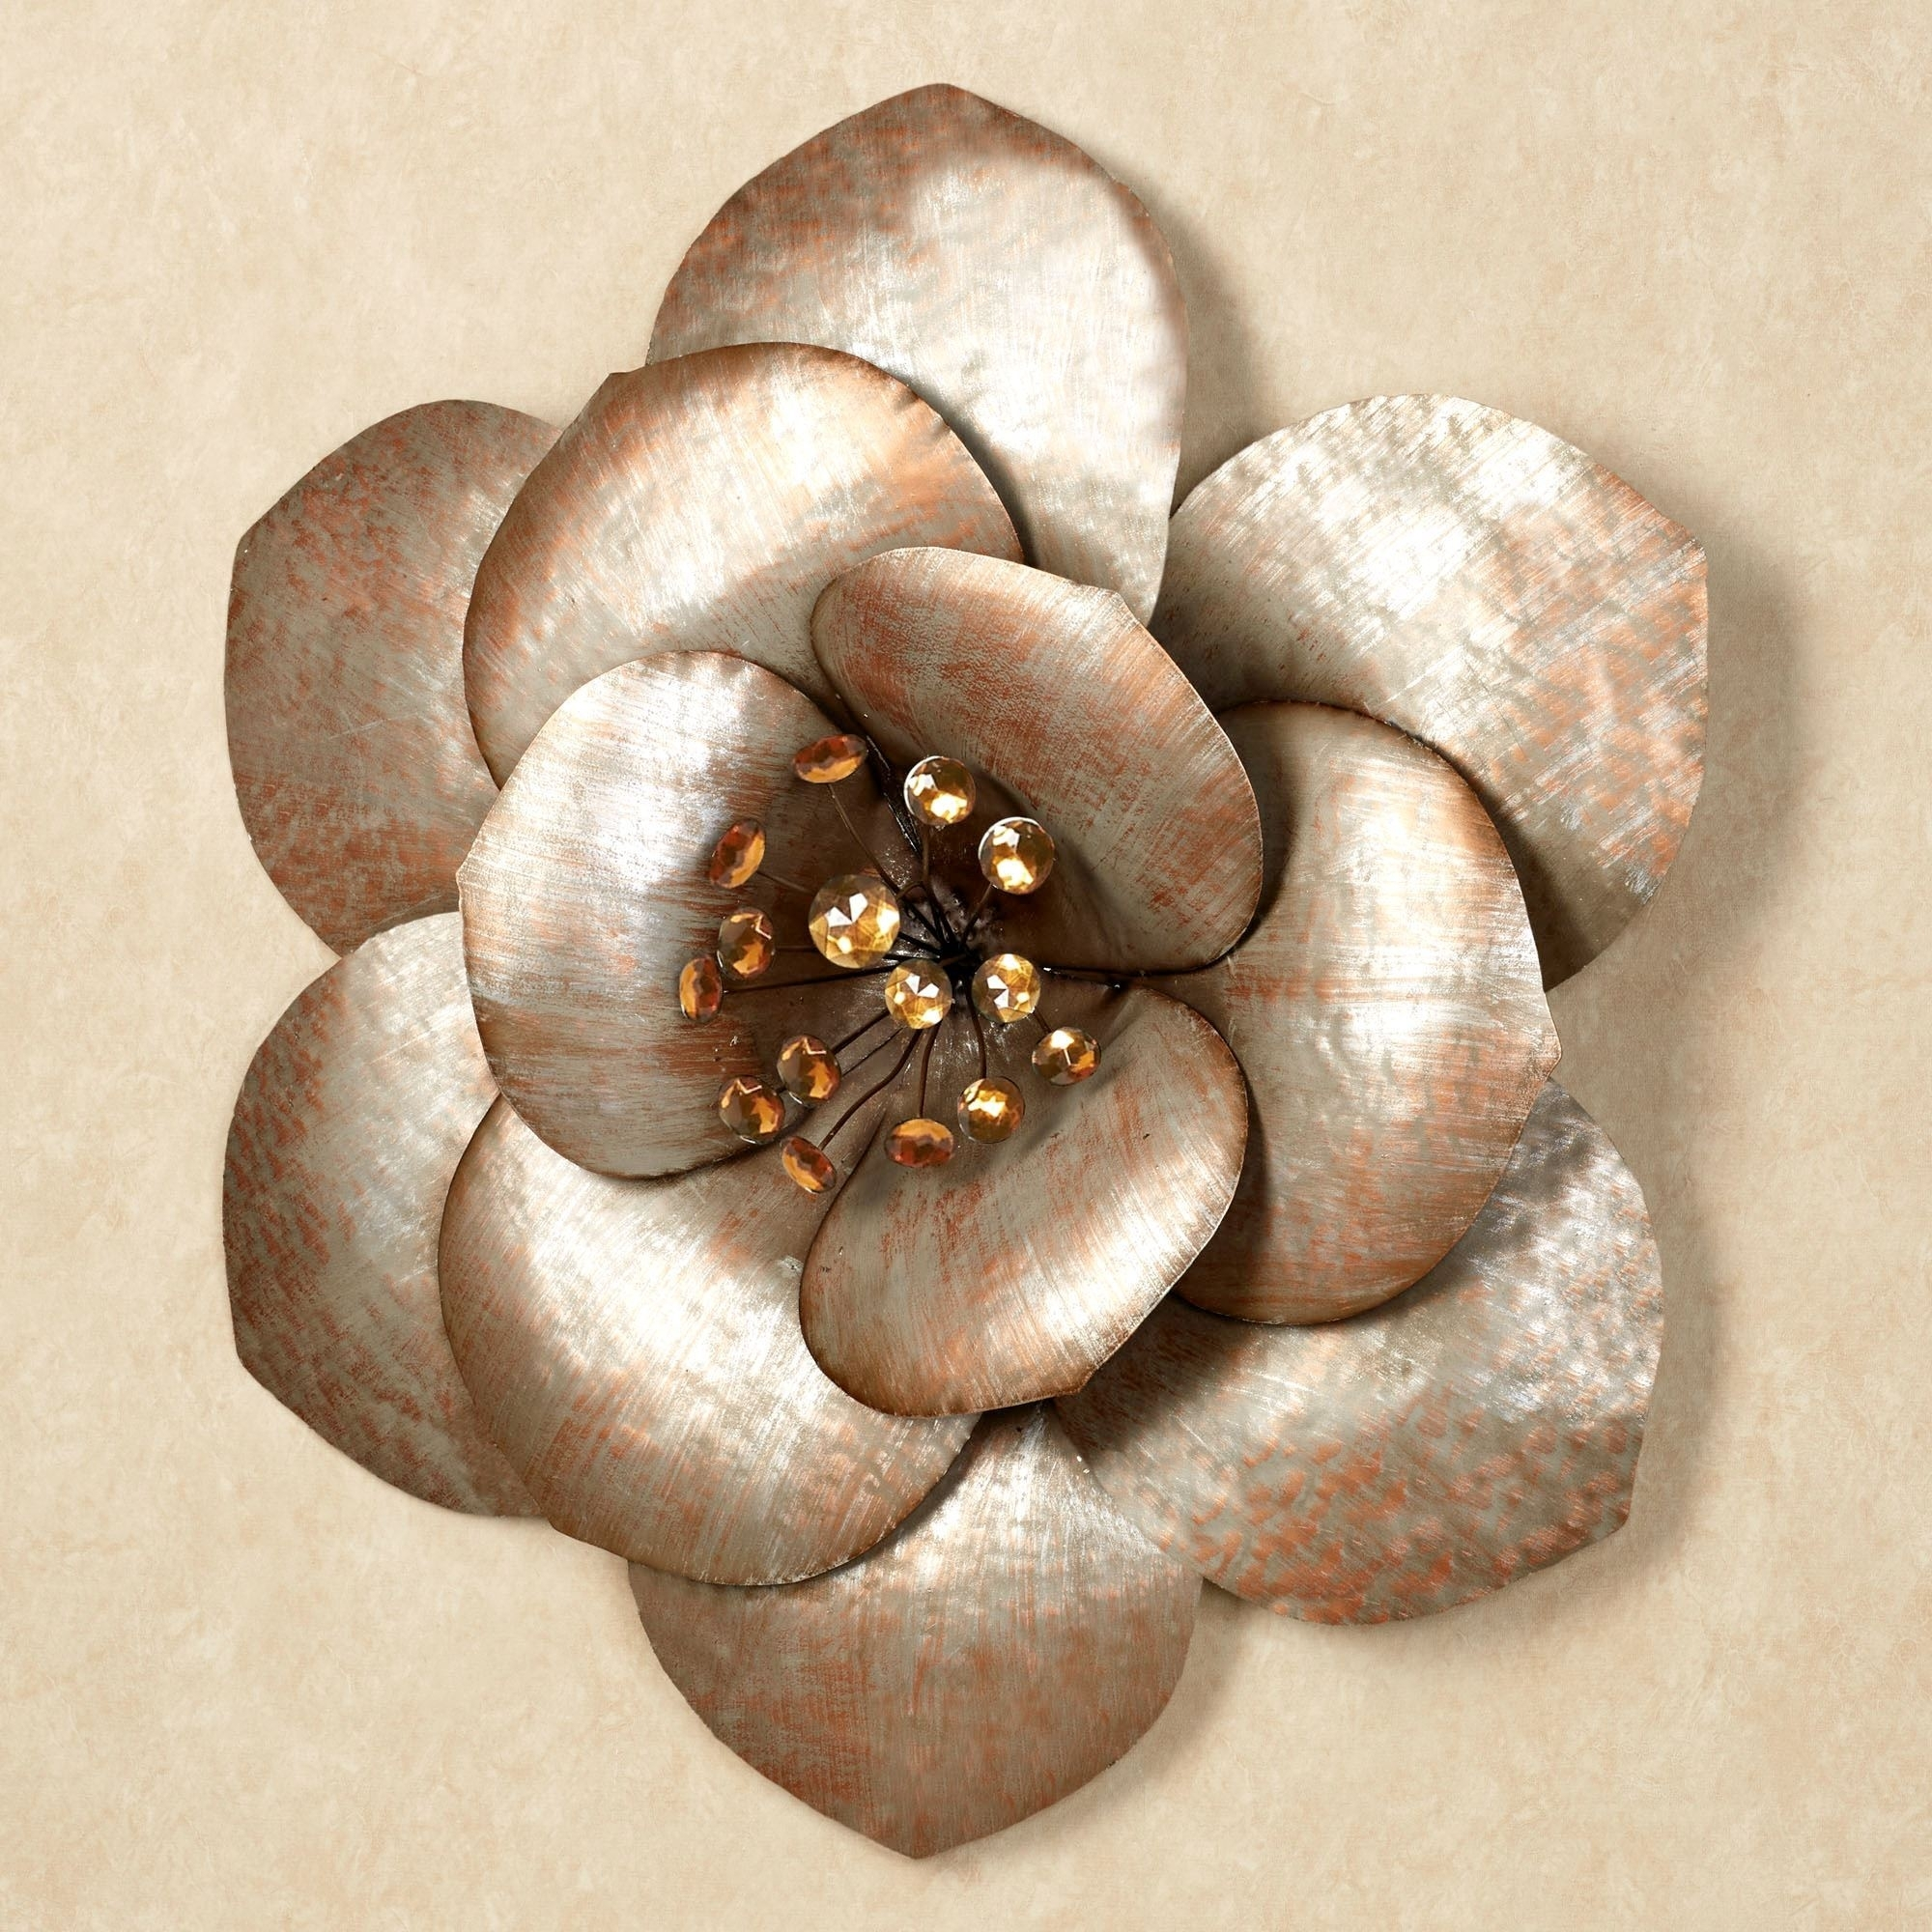 Fiore Gem Flower Blossom Metal Wall Art Pertaining To 2018 Metal Flower Wall Art (View 7 of 15)